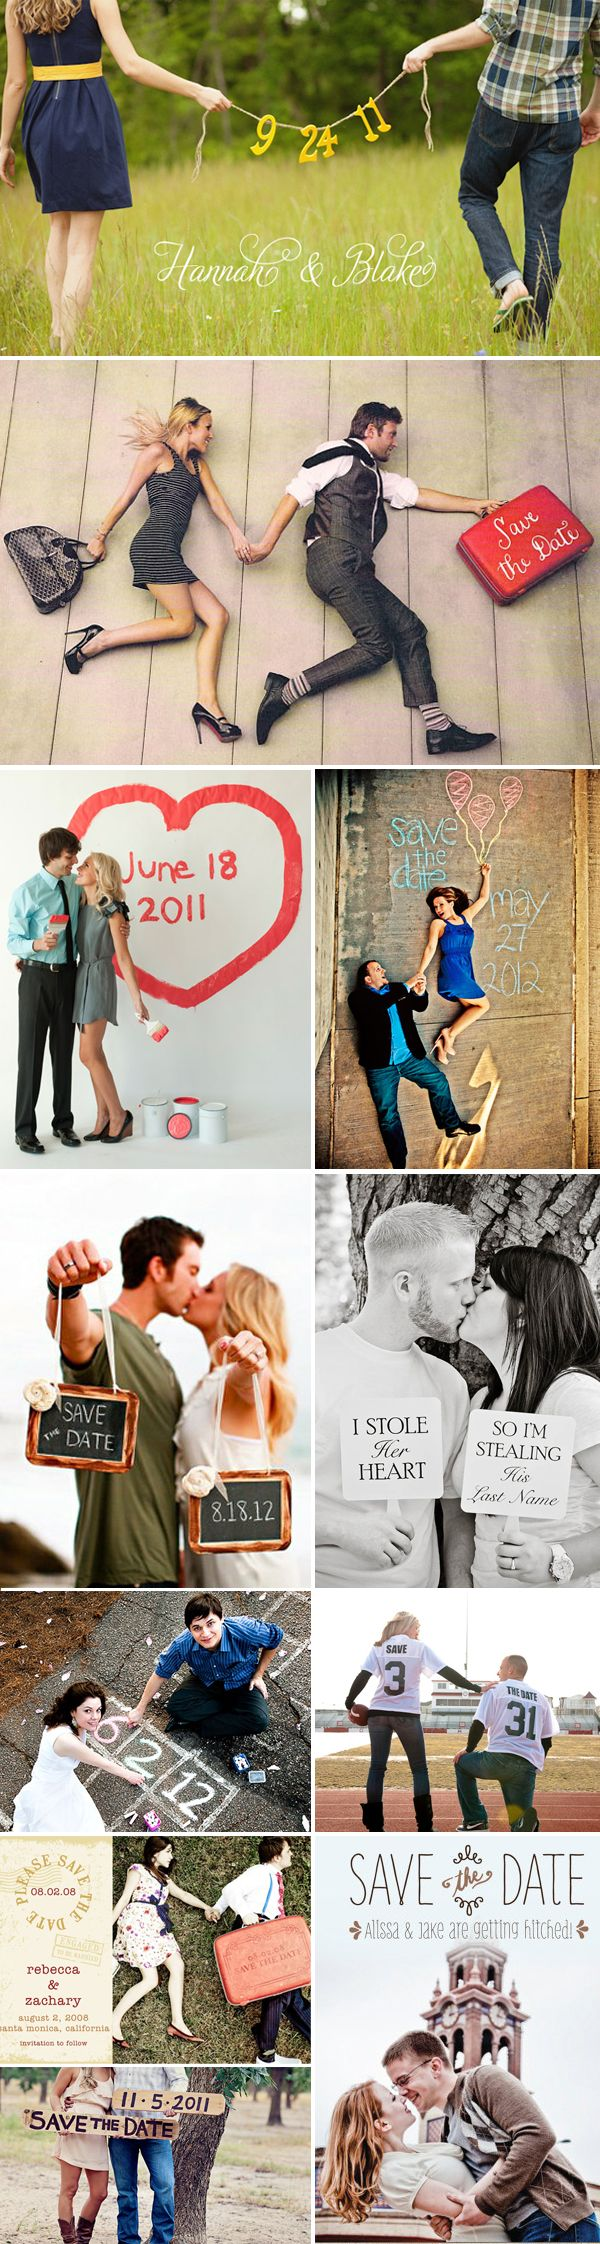 More save the date ideas (: